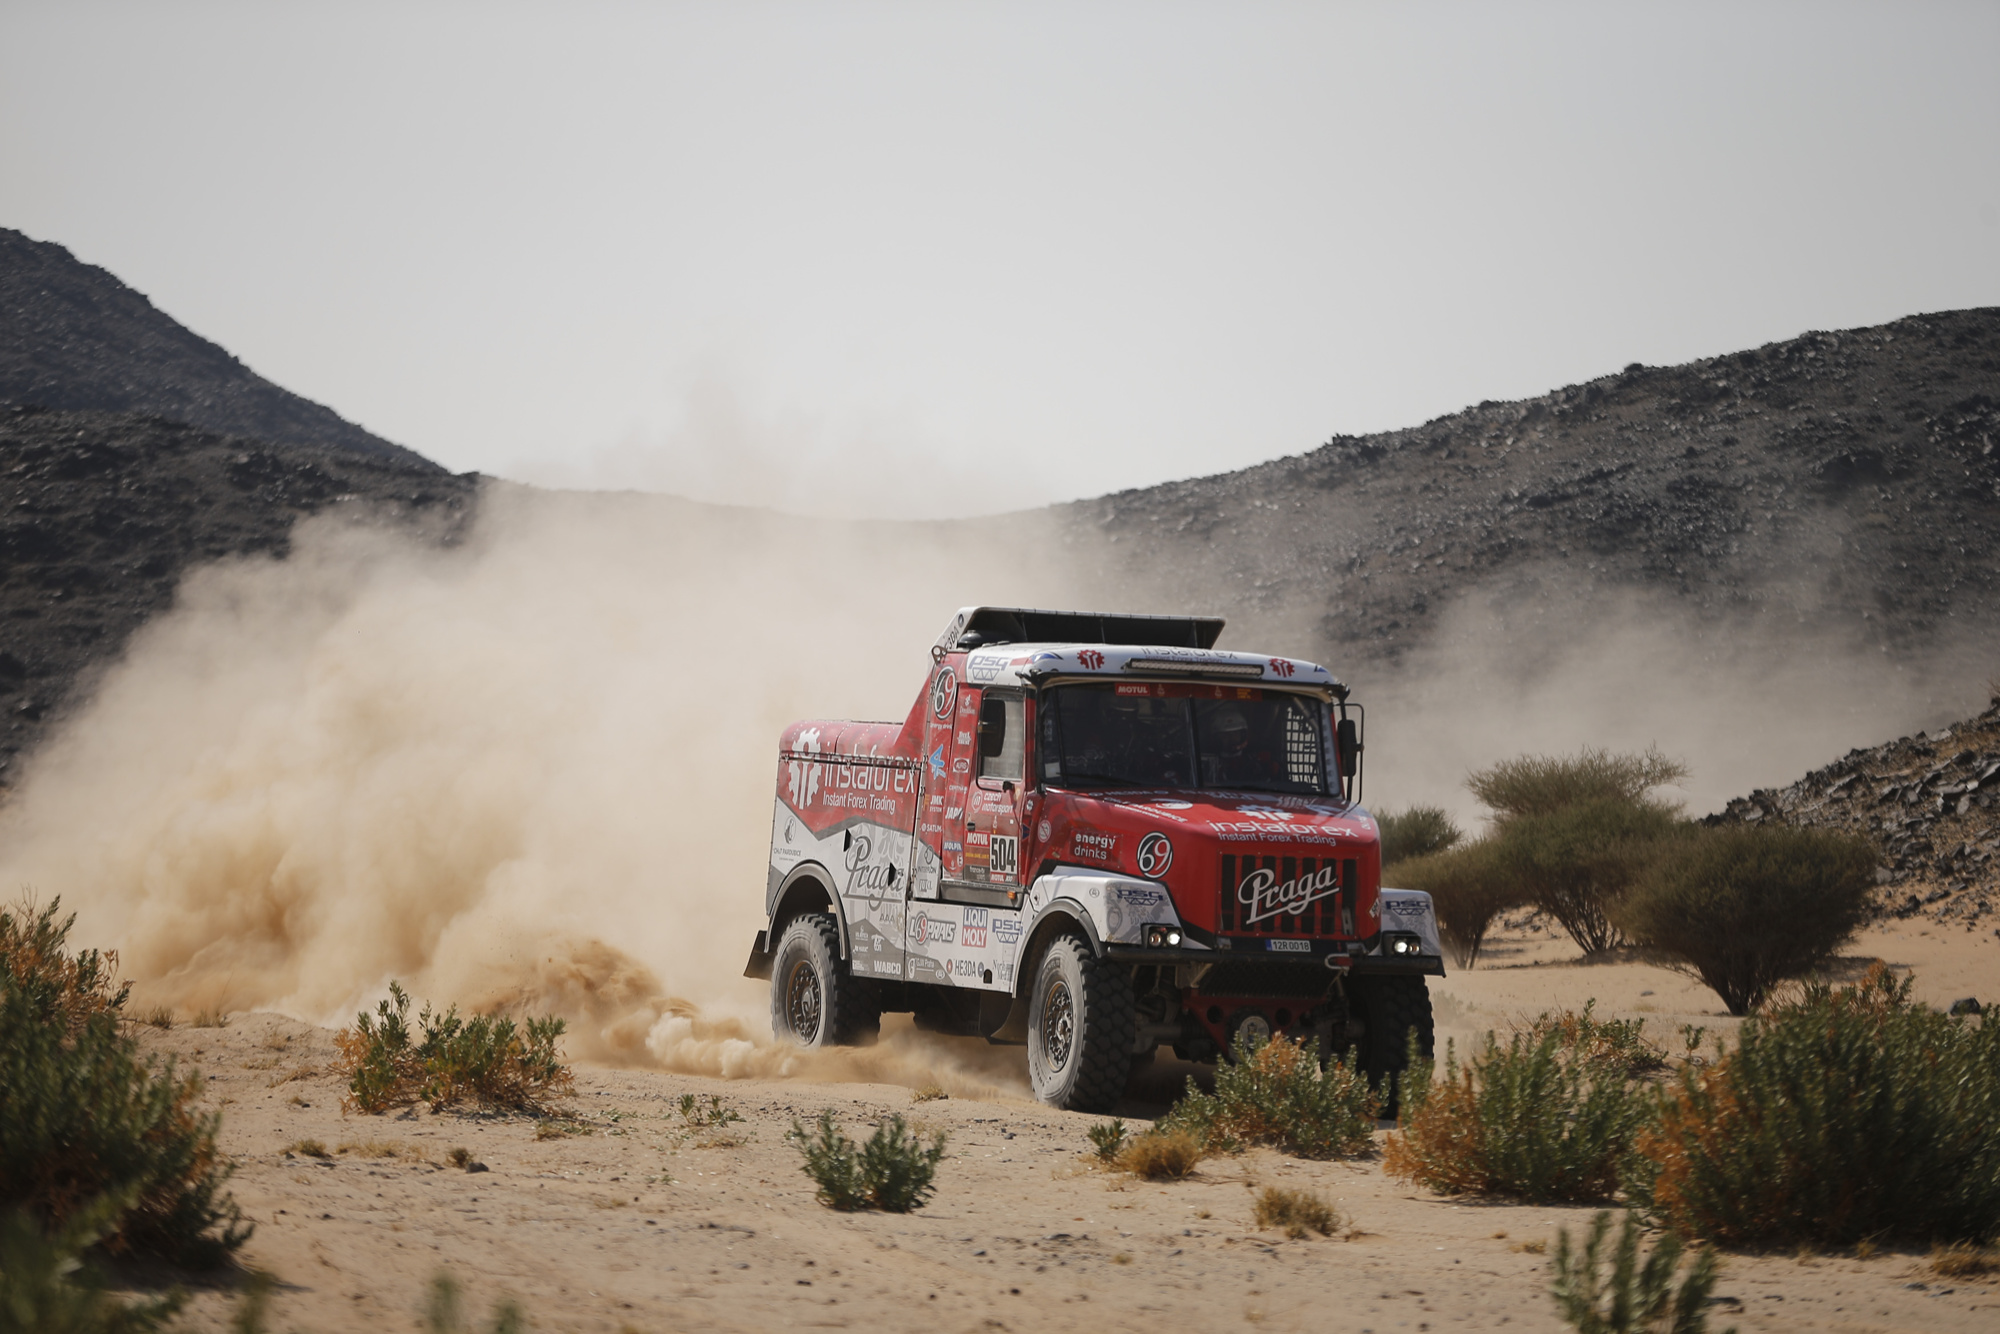 Dakar 2021: Another puncture, but Aleš Loprais remains in fifth place